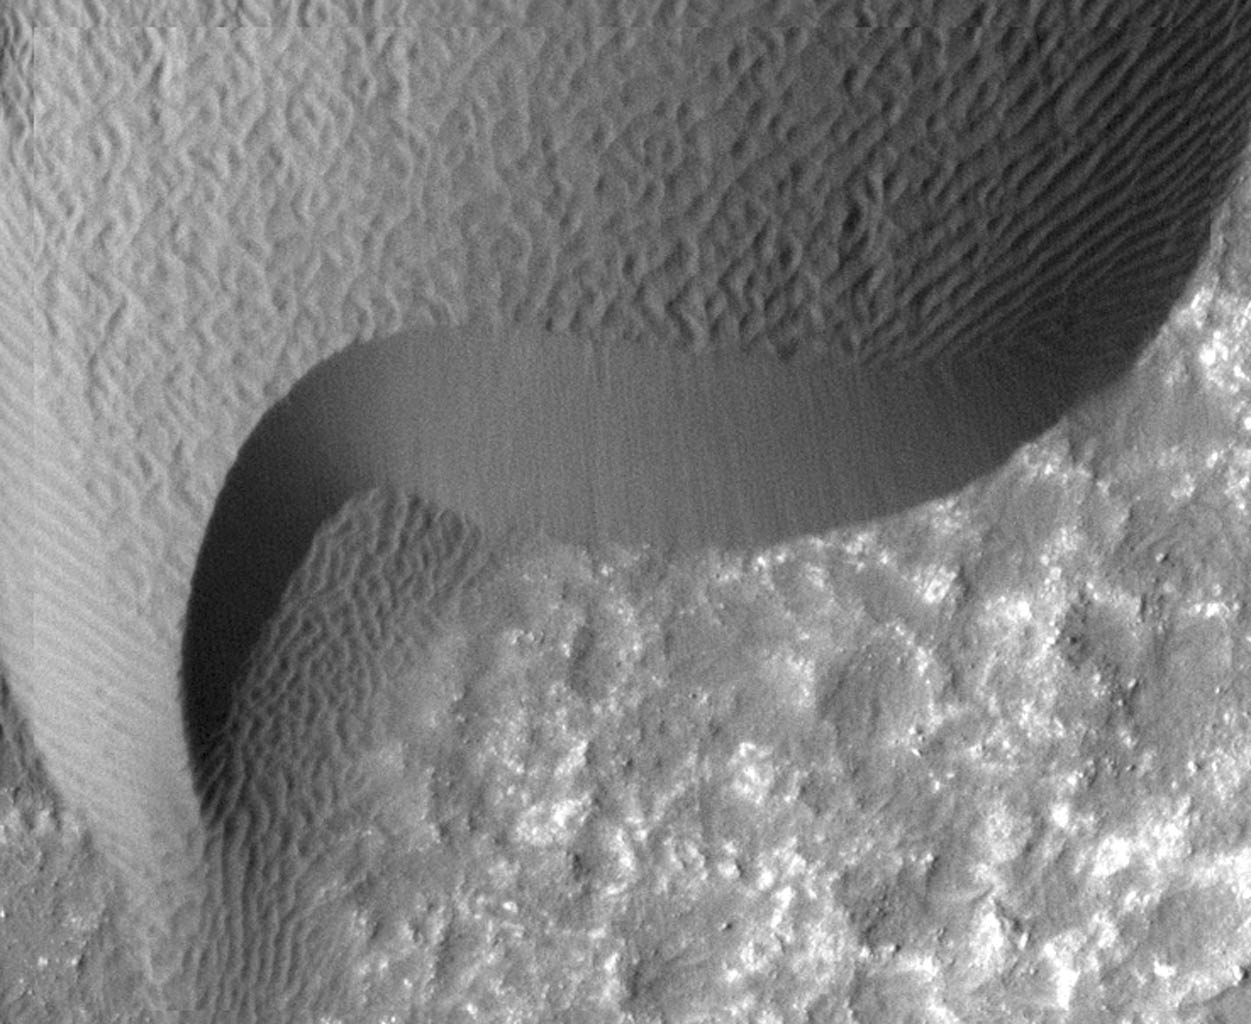 A rippled dune front in Herschel Crater on Mars moved an average of about two meters (about two yards) between March 3, 2007 and December 1, 2010, as seen in one of two images from NASA's Mars Reconnaissance Orbiter.